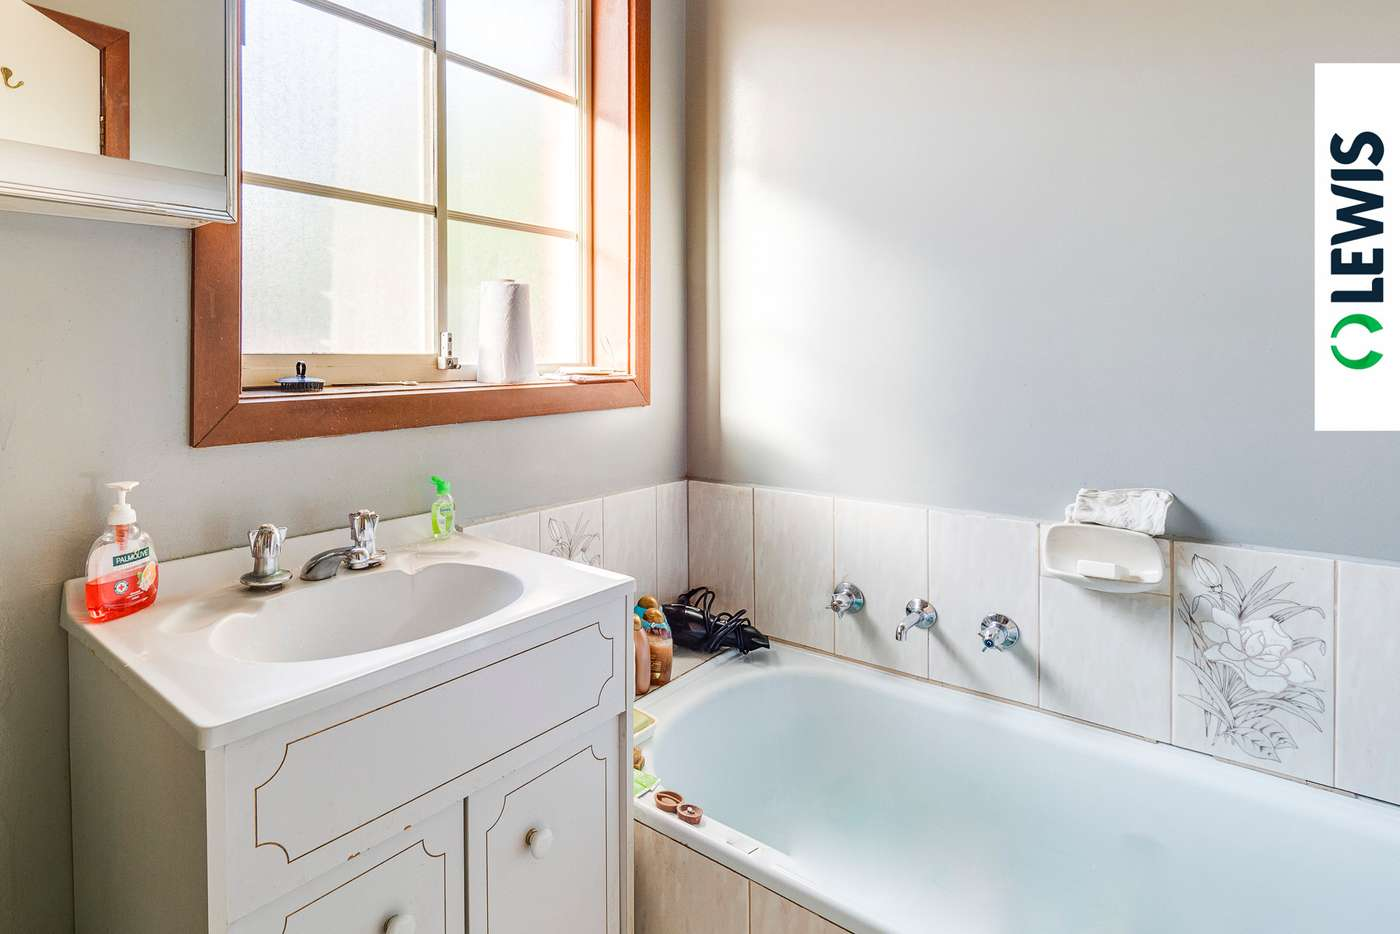 Sixth view of Homely house listing, 24 Fowler Street, Coburg VIC 3058